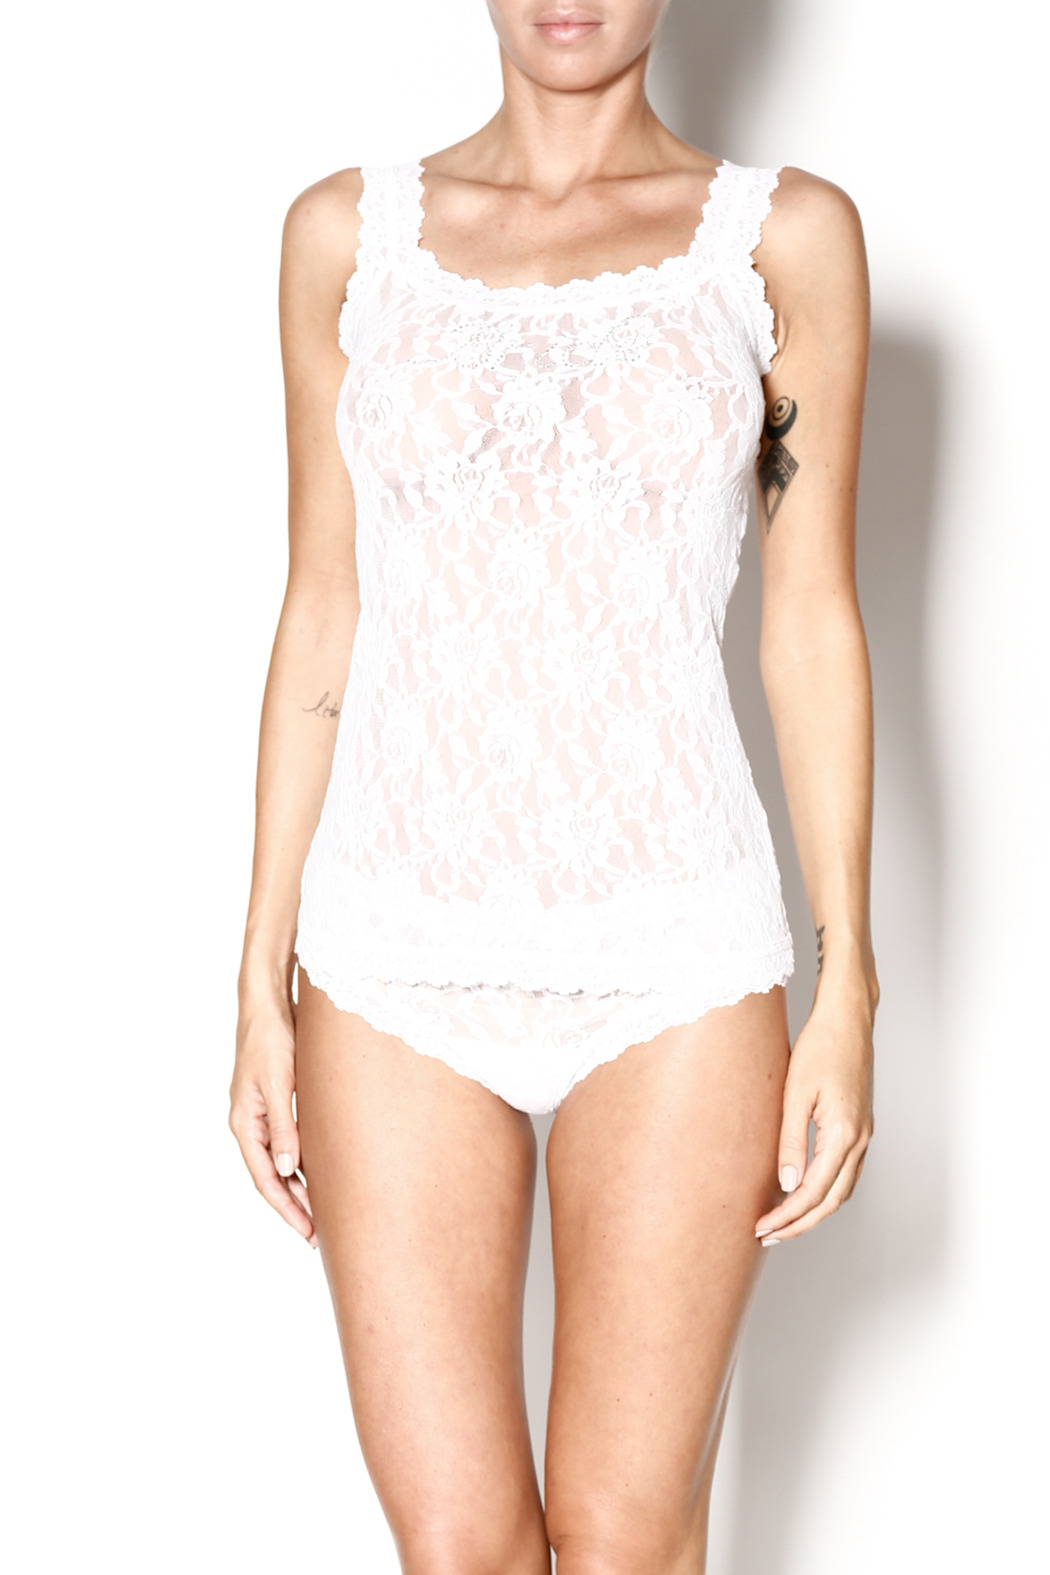 aad3756a977659 Hanky Panky Bride Lace Tank from New York by Scandia House — Shoptiques